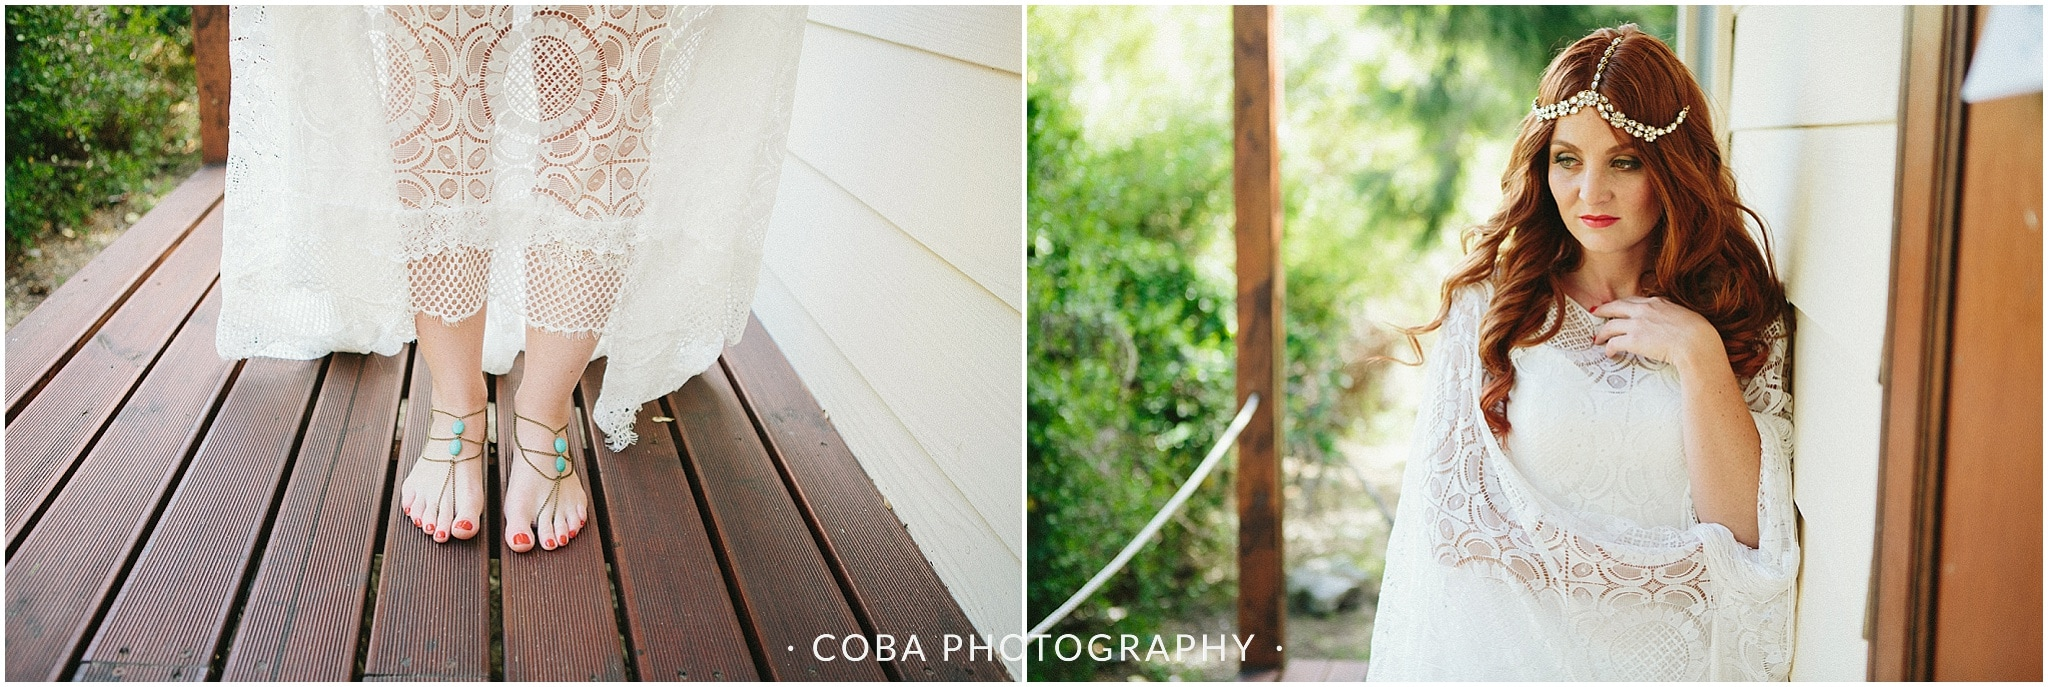 Conrad & Mareli - boho beach wedding habonim - coba photography (32)